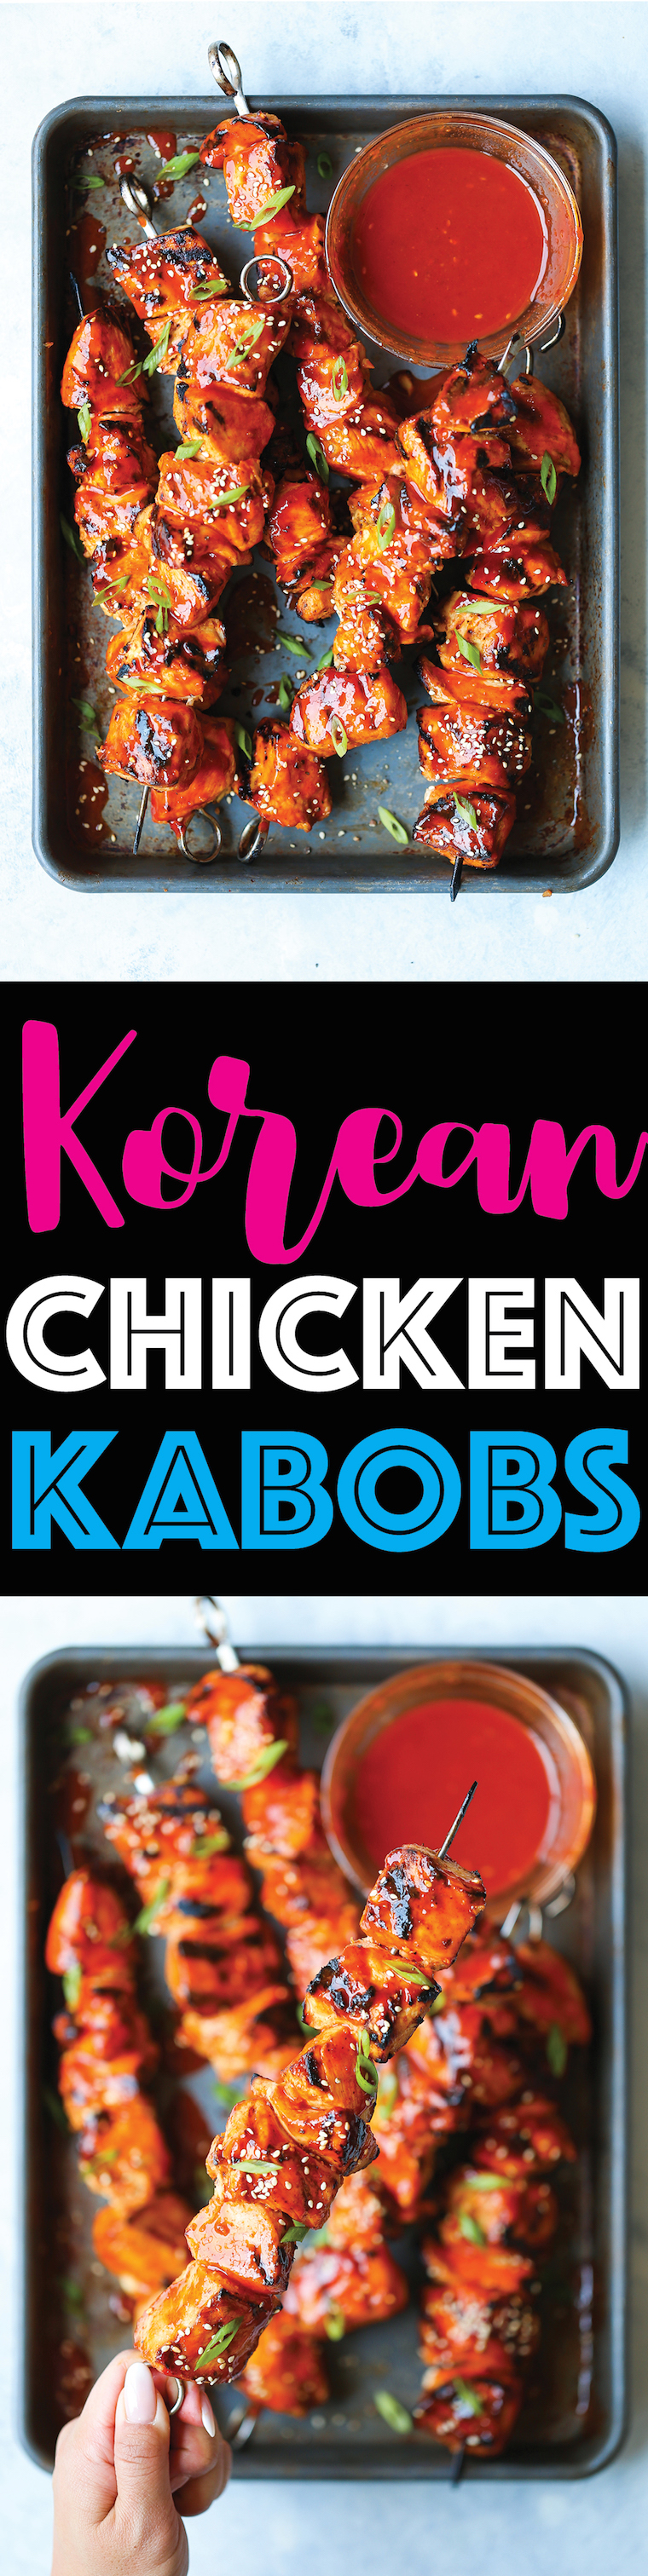 Korean Chicken Kabobs - An amazing combination of sweet and spicy! And the chicken comes out perfectly tender and juicy with a finger-licking sticky glaze!